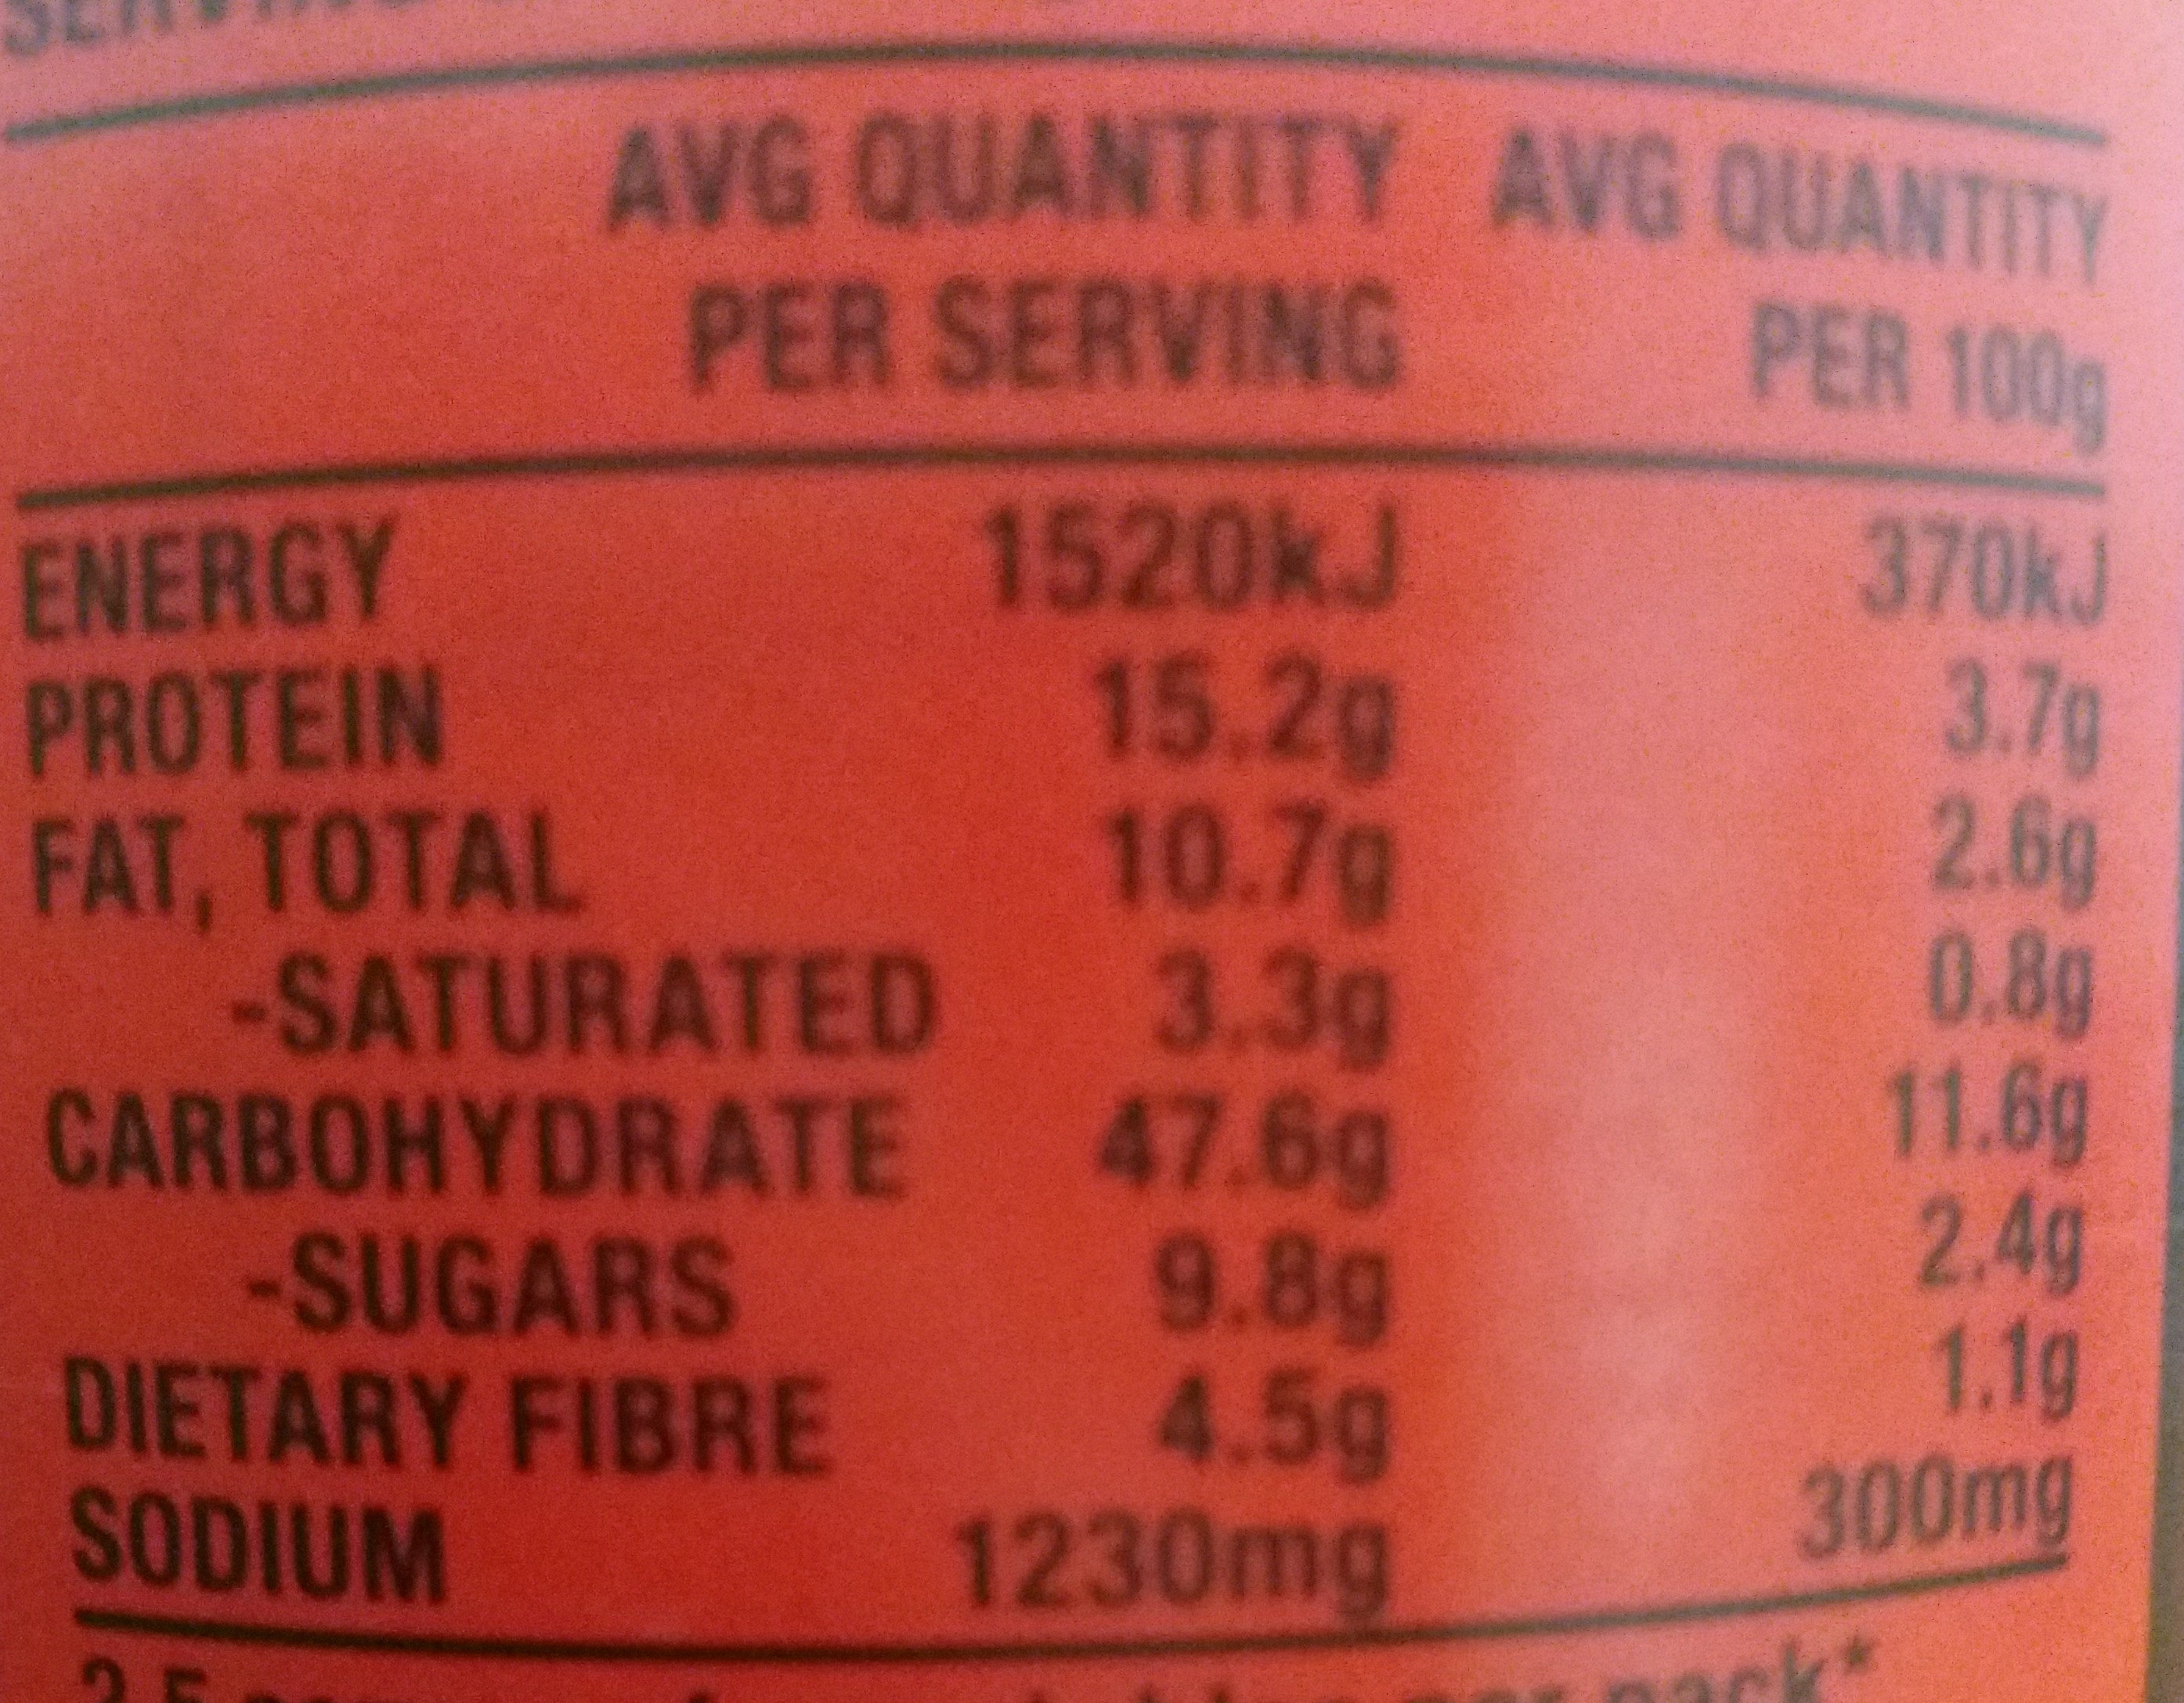 Big Eat Ravioli bolognese - Nutrition facts